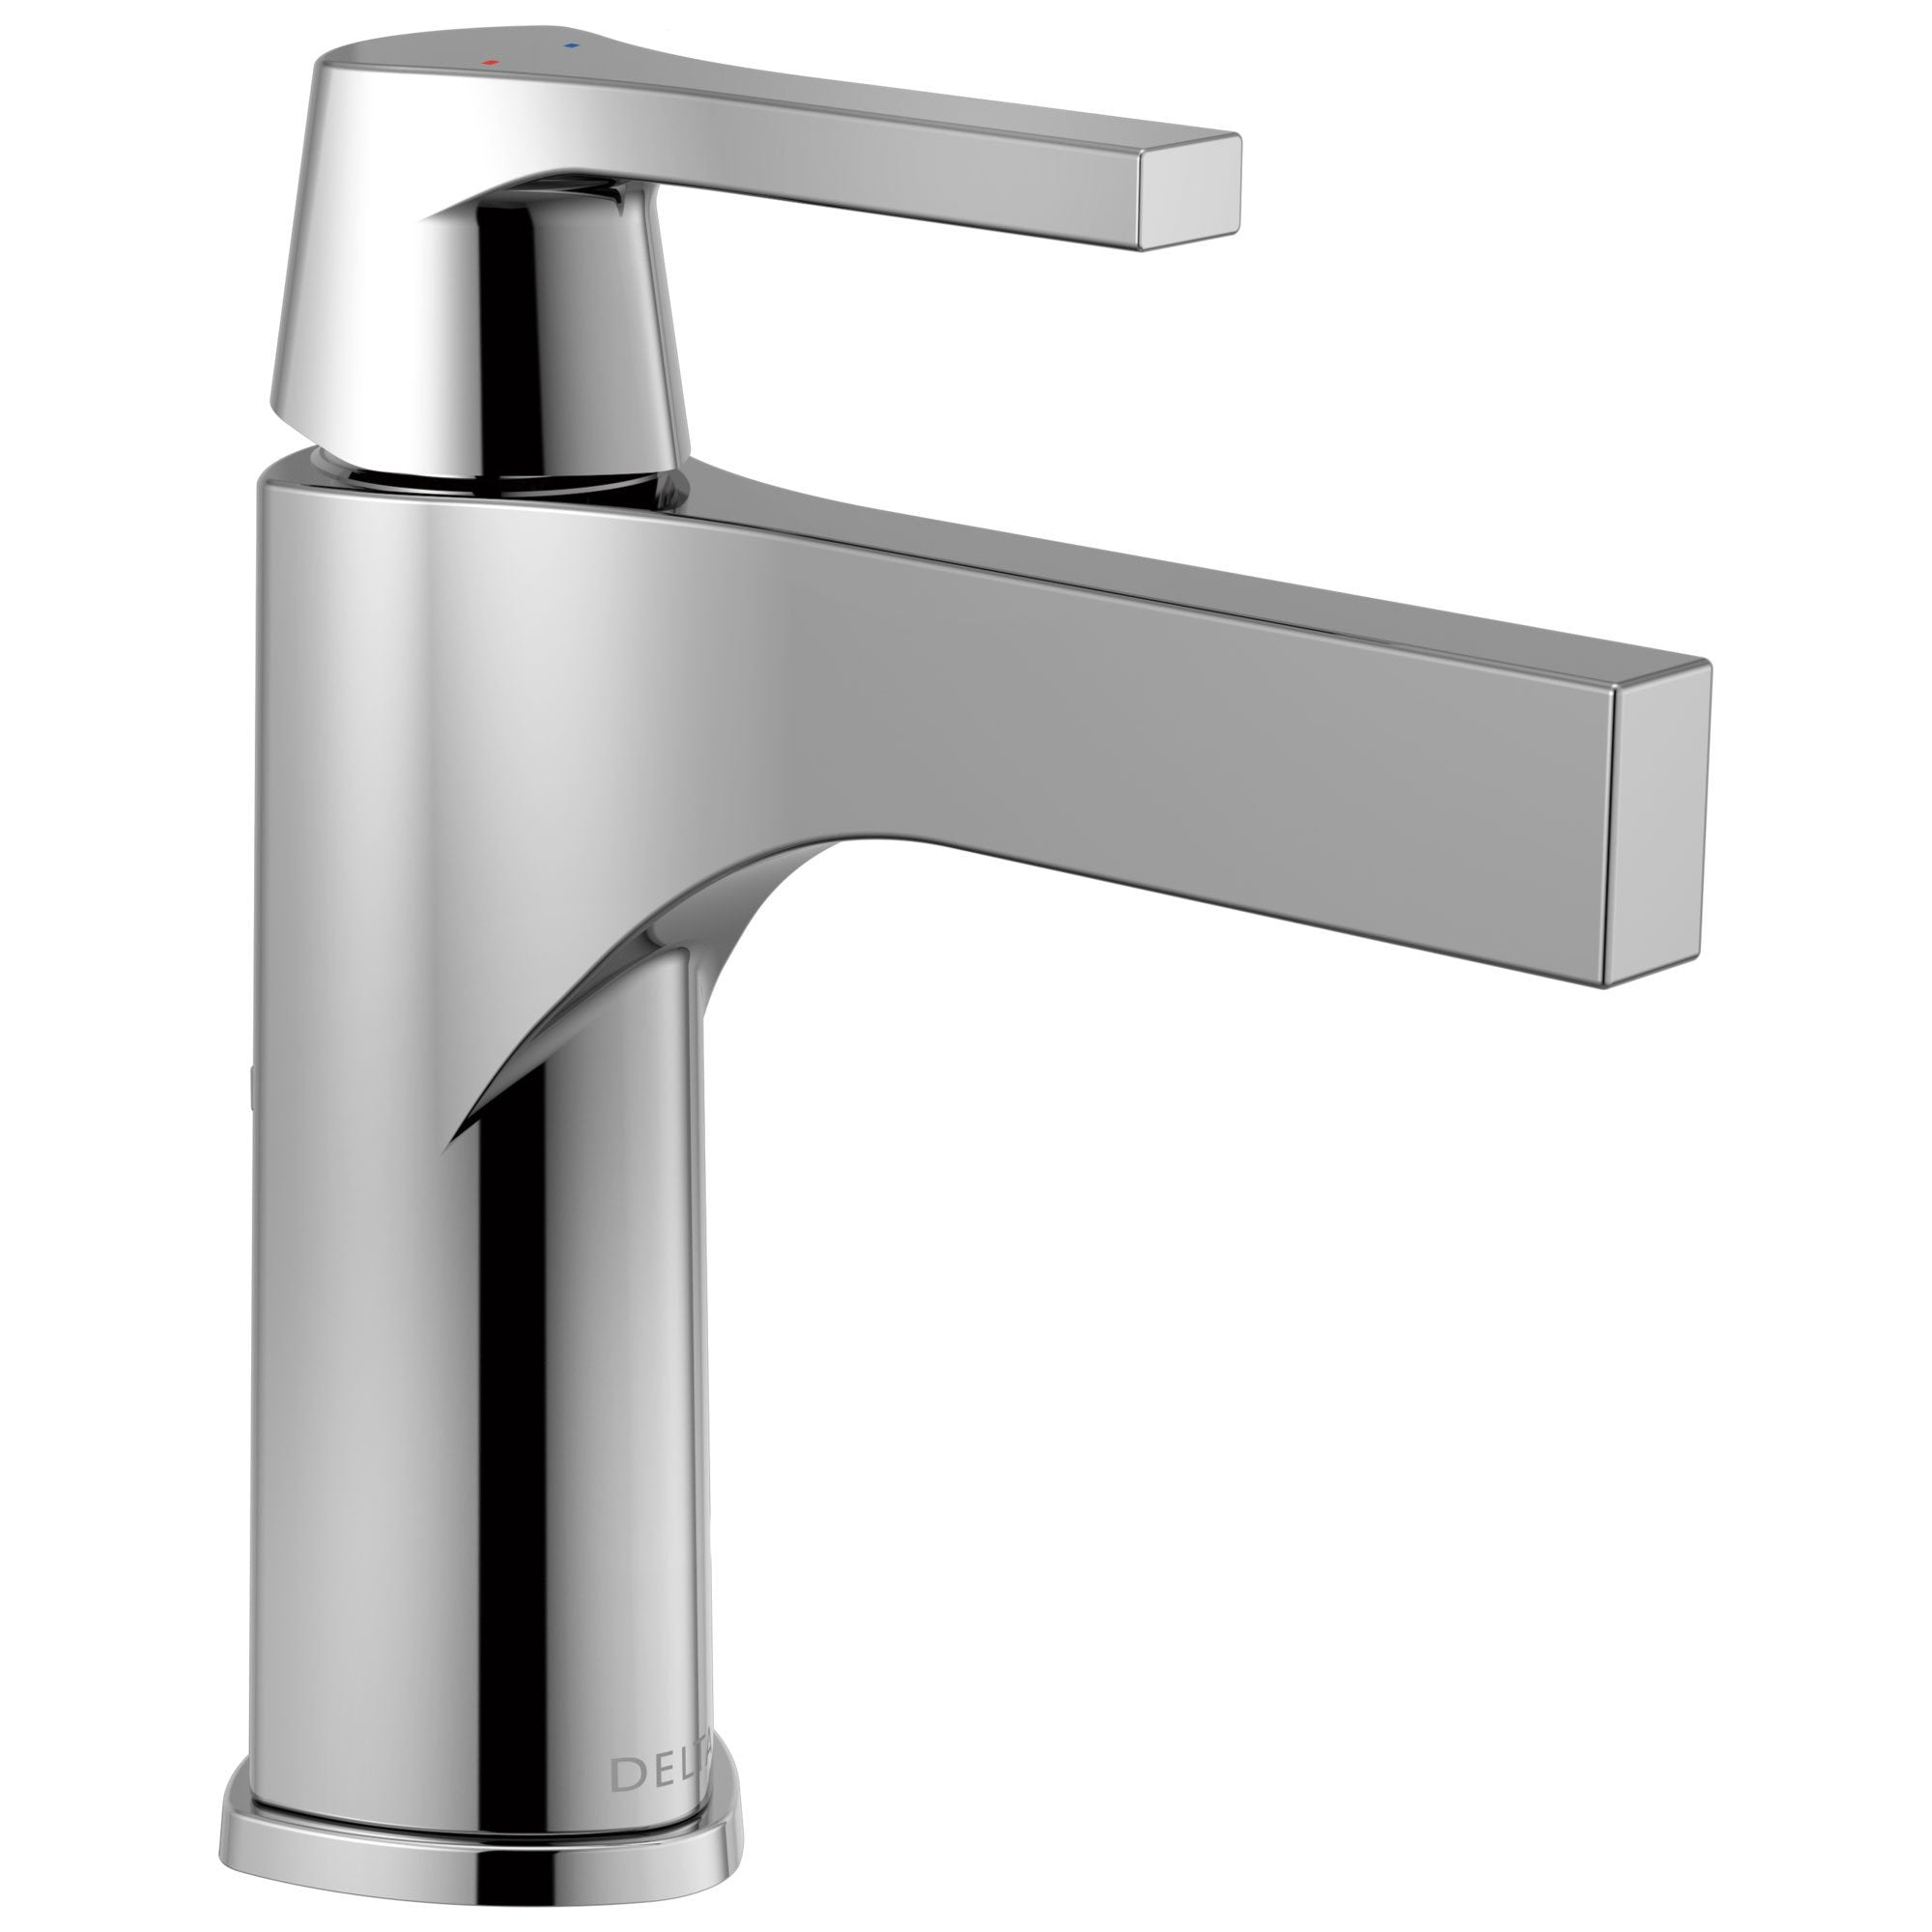 Delta Zura Collection Chrome Finish Single Handle Modern One Hole Bathroom Lavatory Sink Faucet with Metal Pop-up Drain 743892